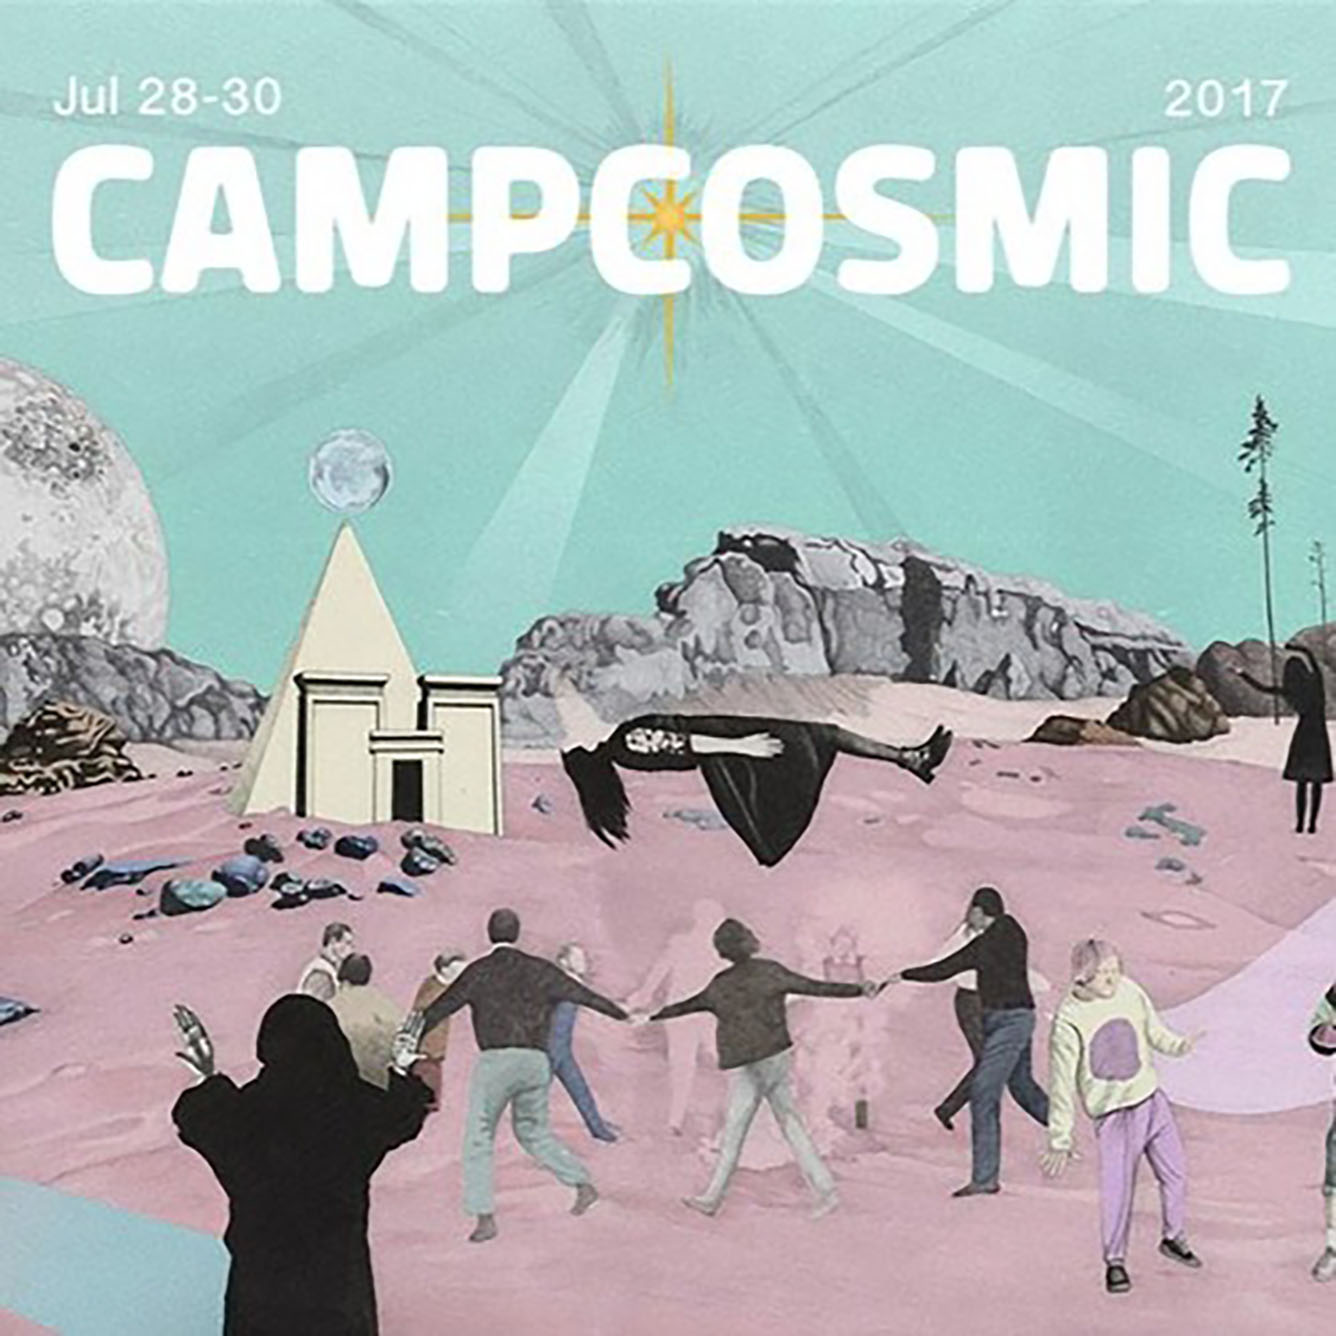 Behind the Amusement Park – Camp Cosmic 2017